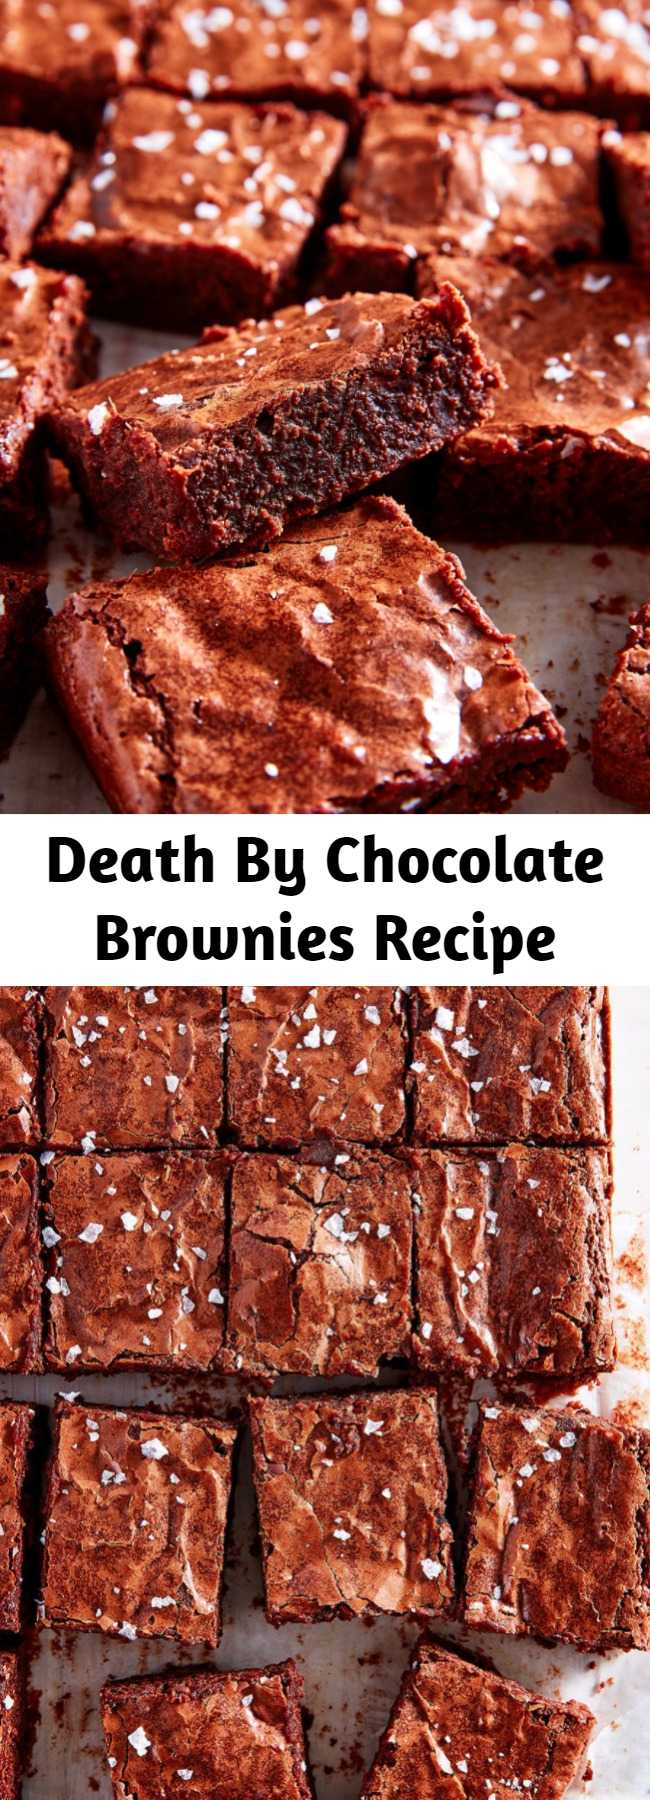 Death By Chocolate Brownies Recipe - Check out this easy recipe for the best ever chocolate brownies. Fudgy on the inside with that iconic crackly top, these brownies will not fail you. These mighttt be the best brownies you ever make.